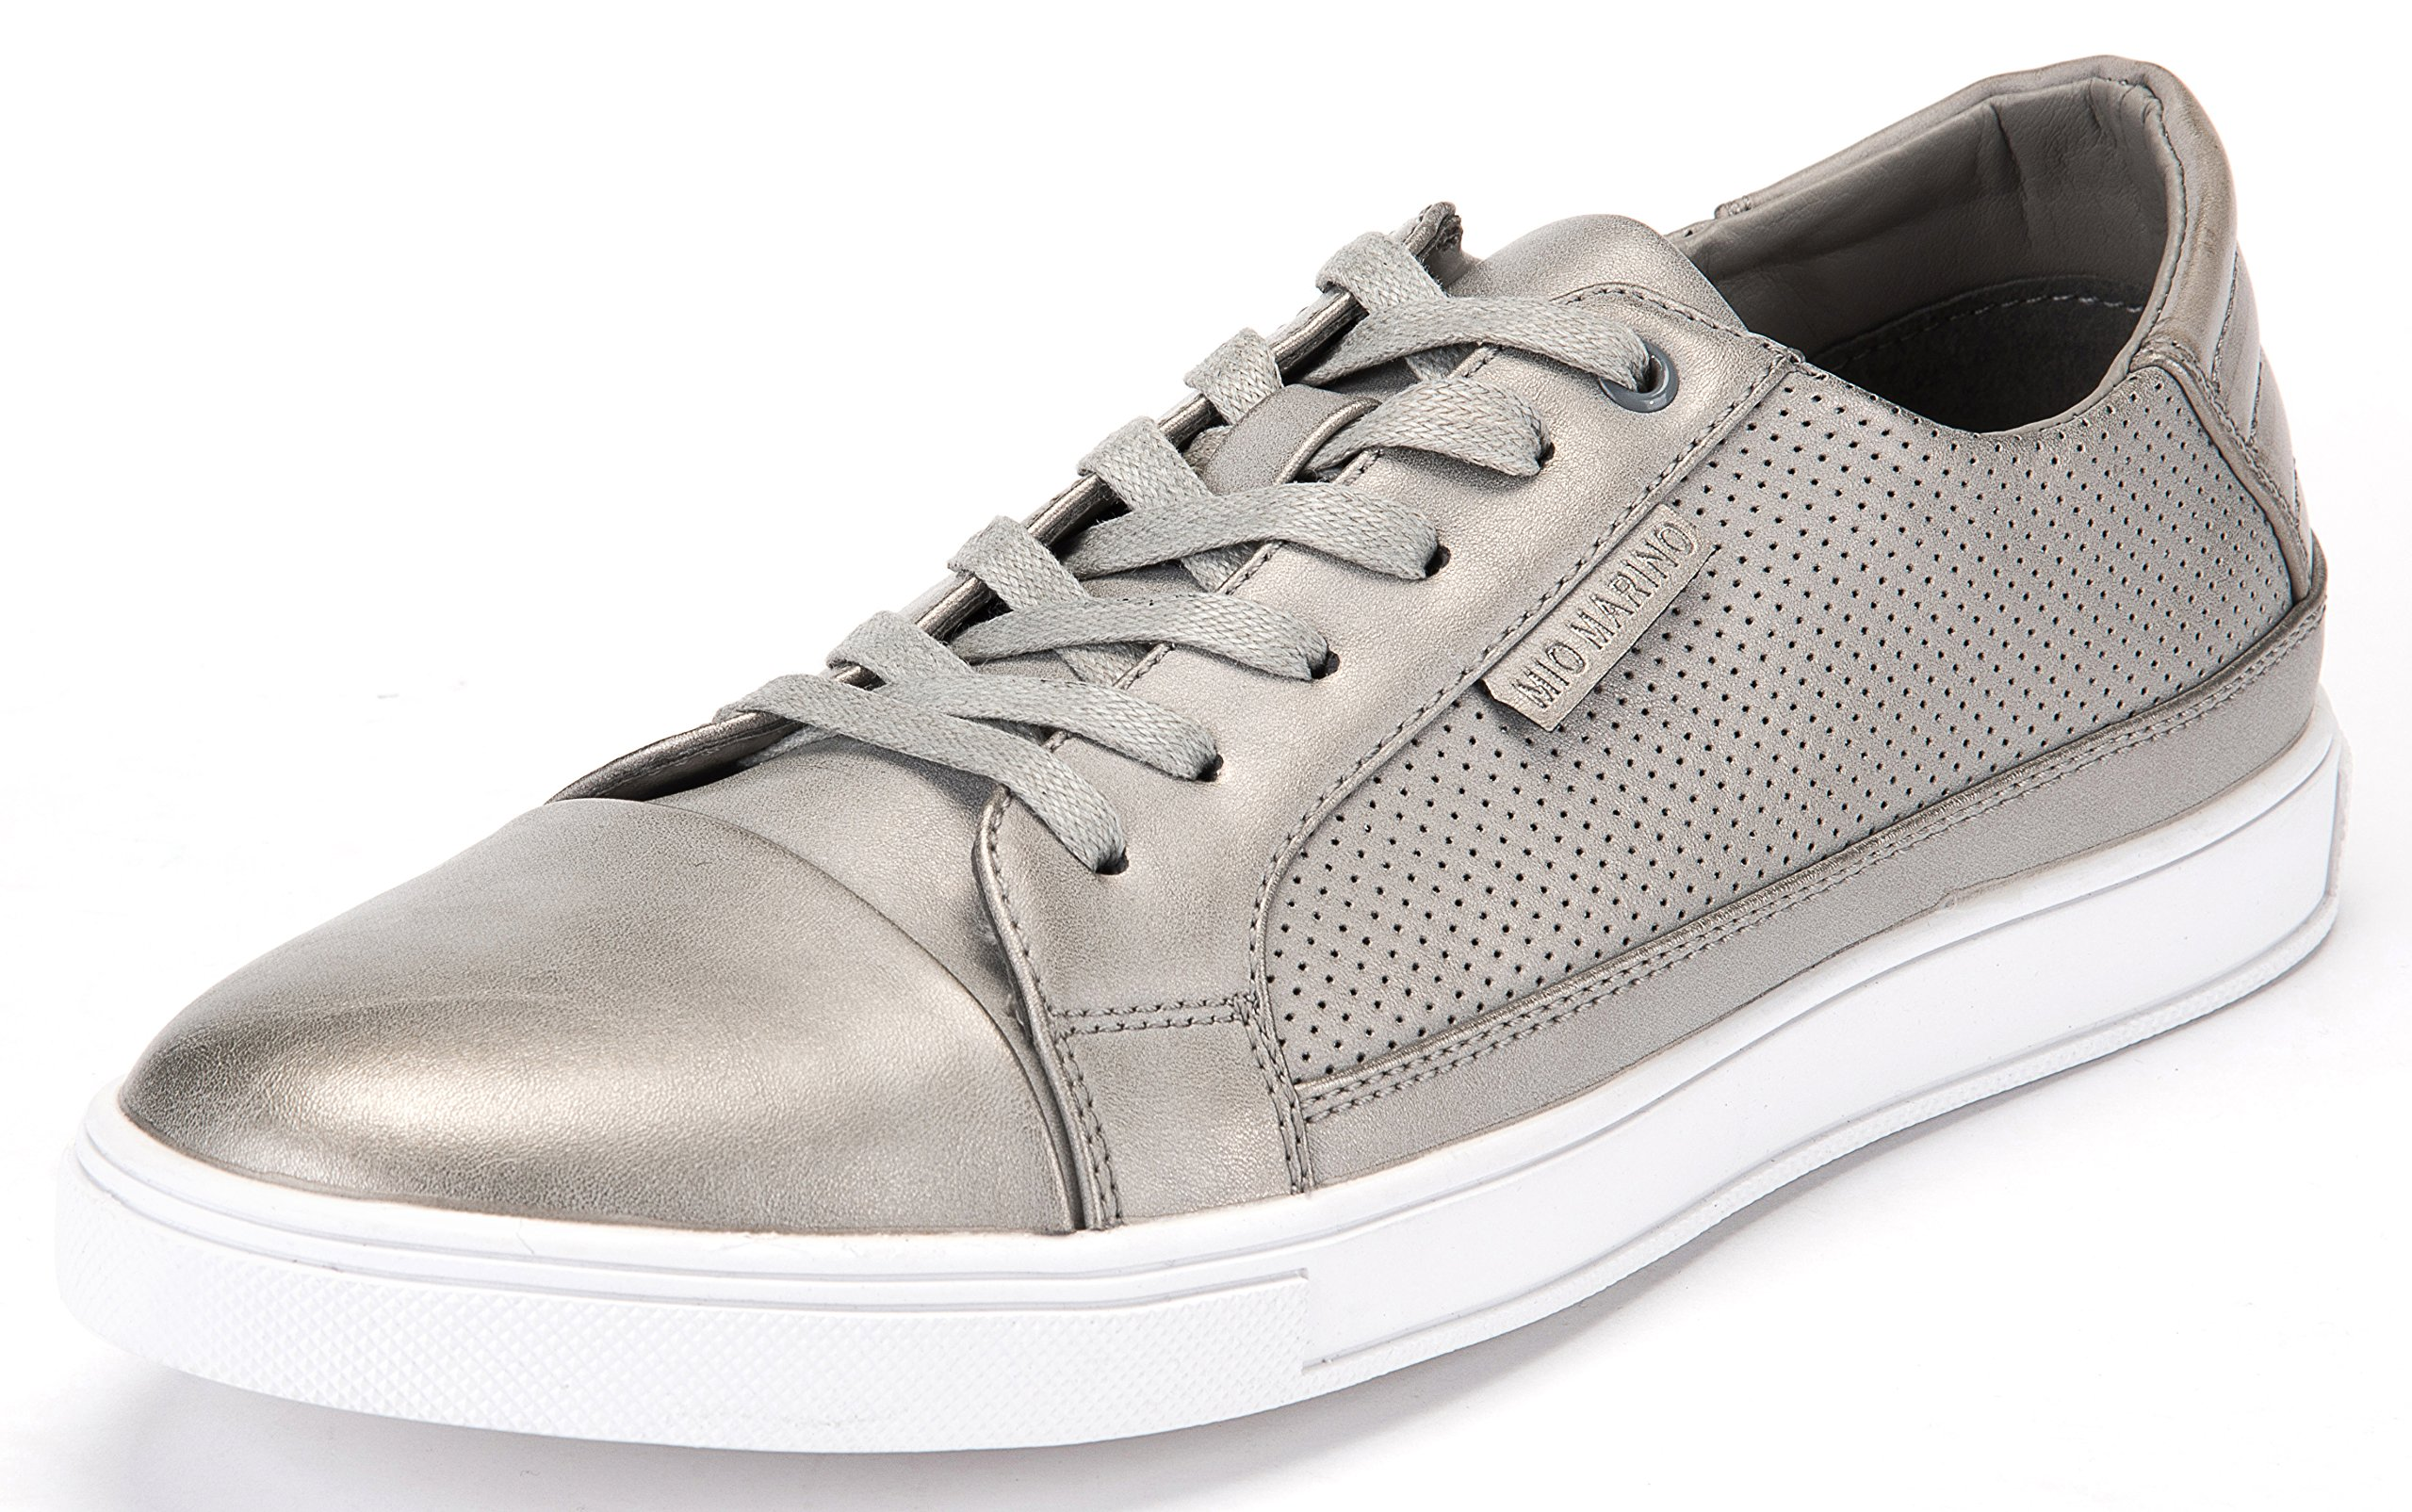 Mio Marino Leather Sneakers for Men - Low Top Mens Fashion Sneakers - Misty Gray - Size US 9.5 | UK 9 | EU 42-43